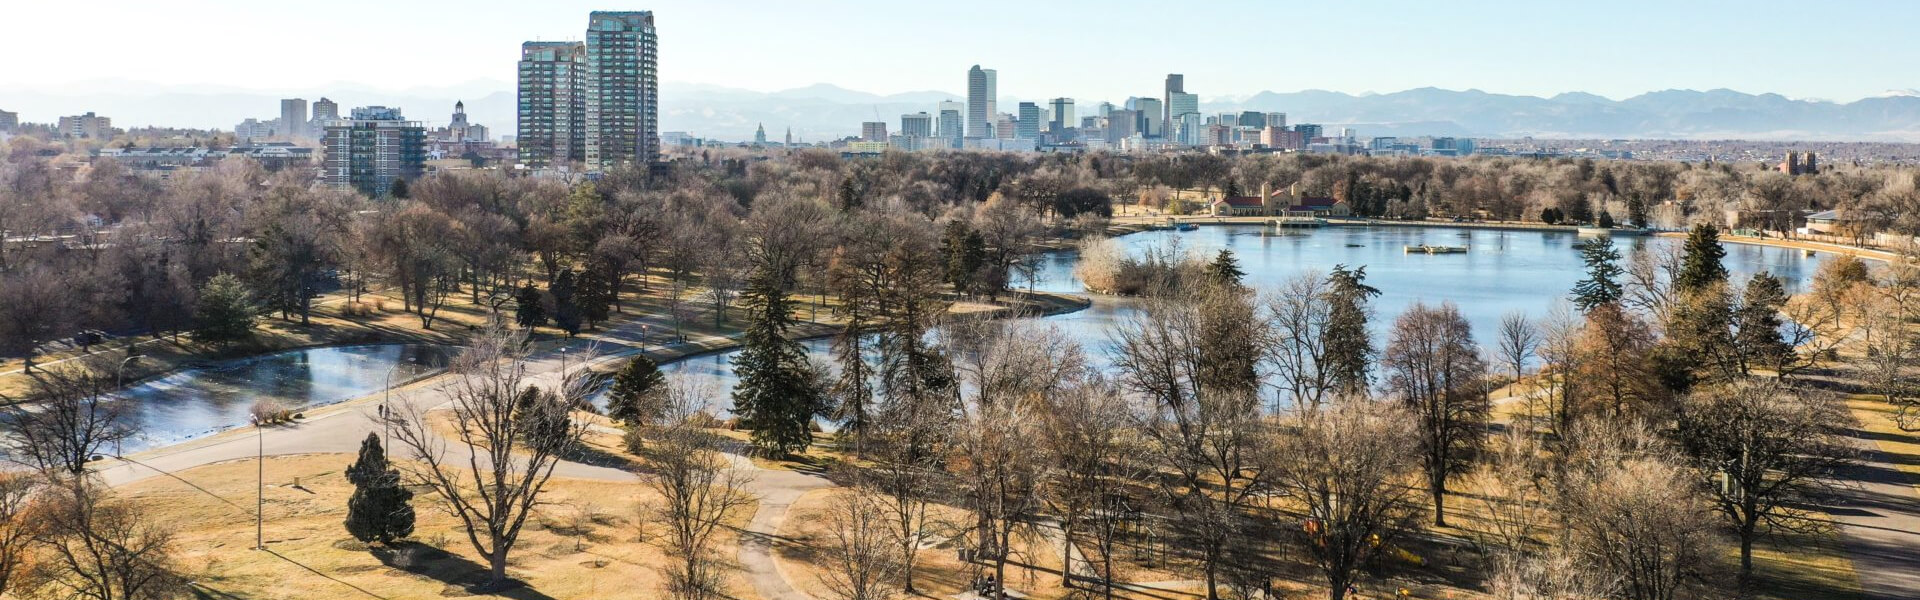 Denver's Terrible Air